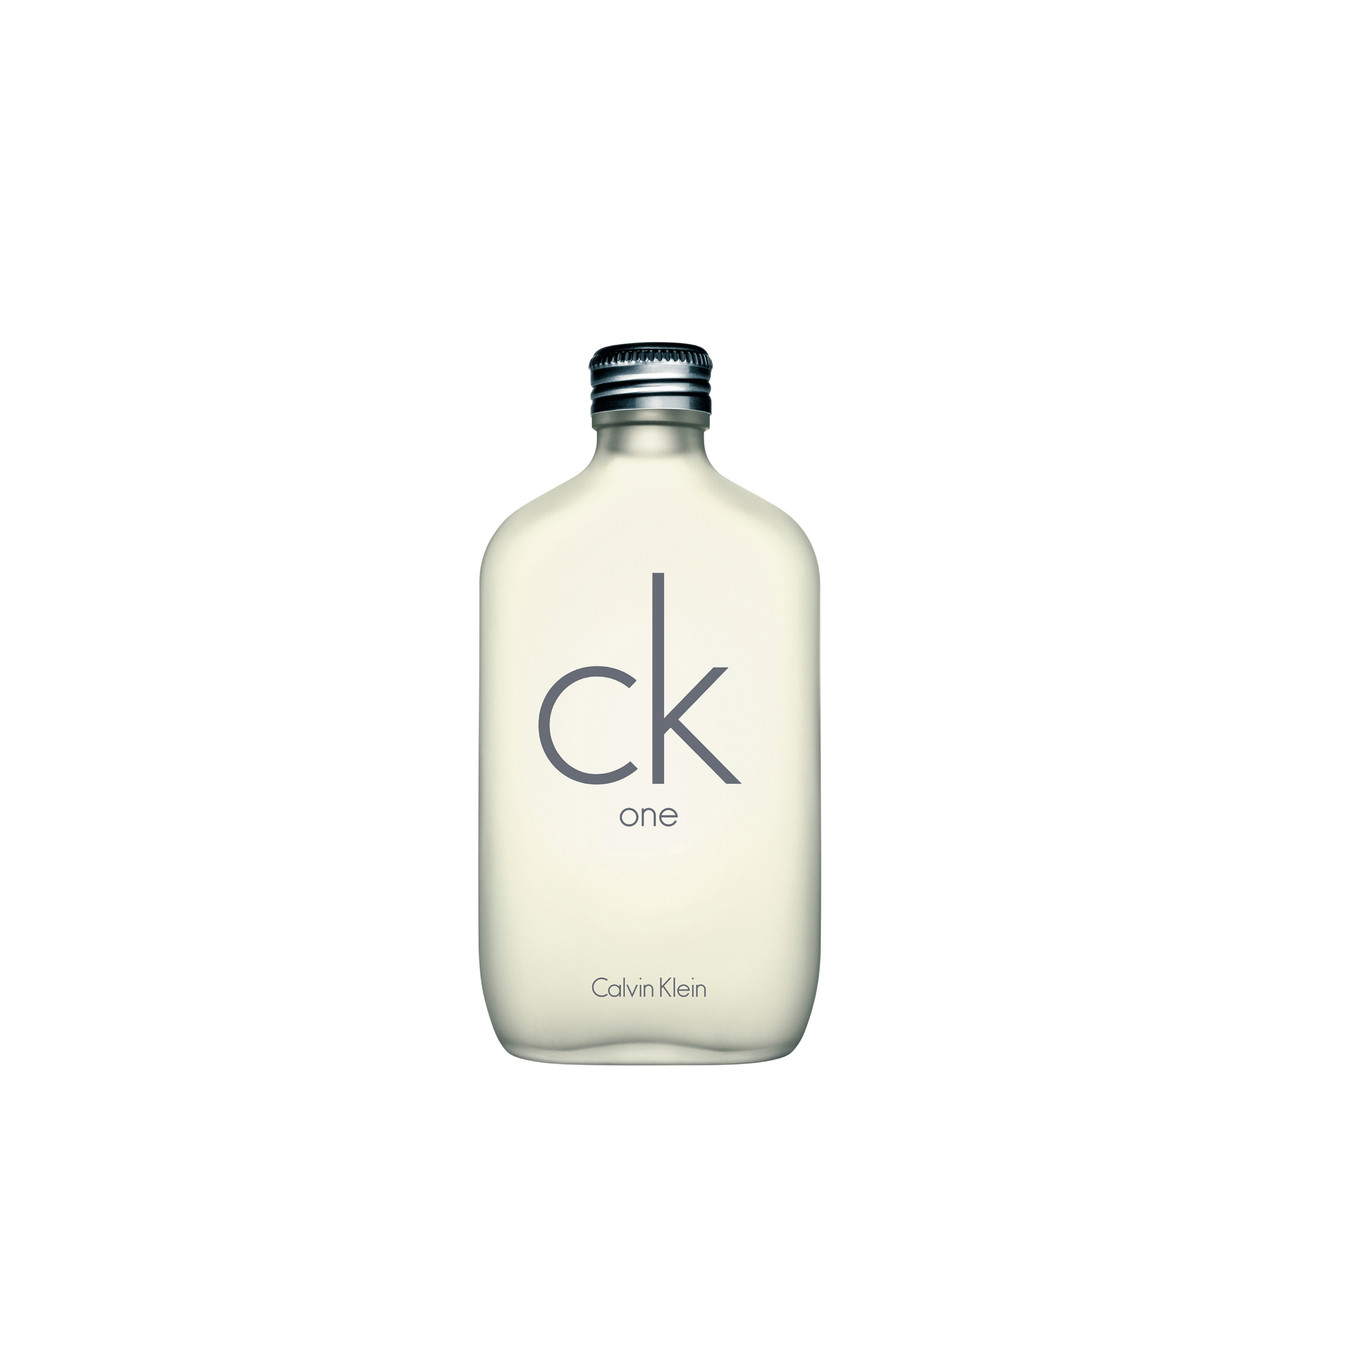 Calvin Klein CK One Eau De Toilette 100ml